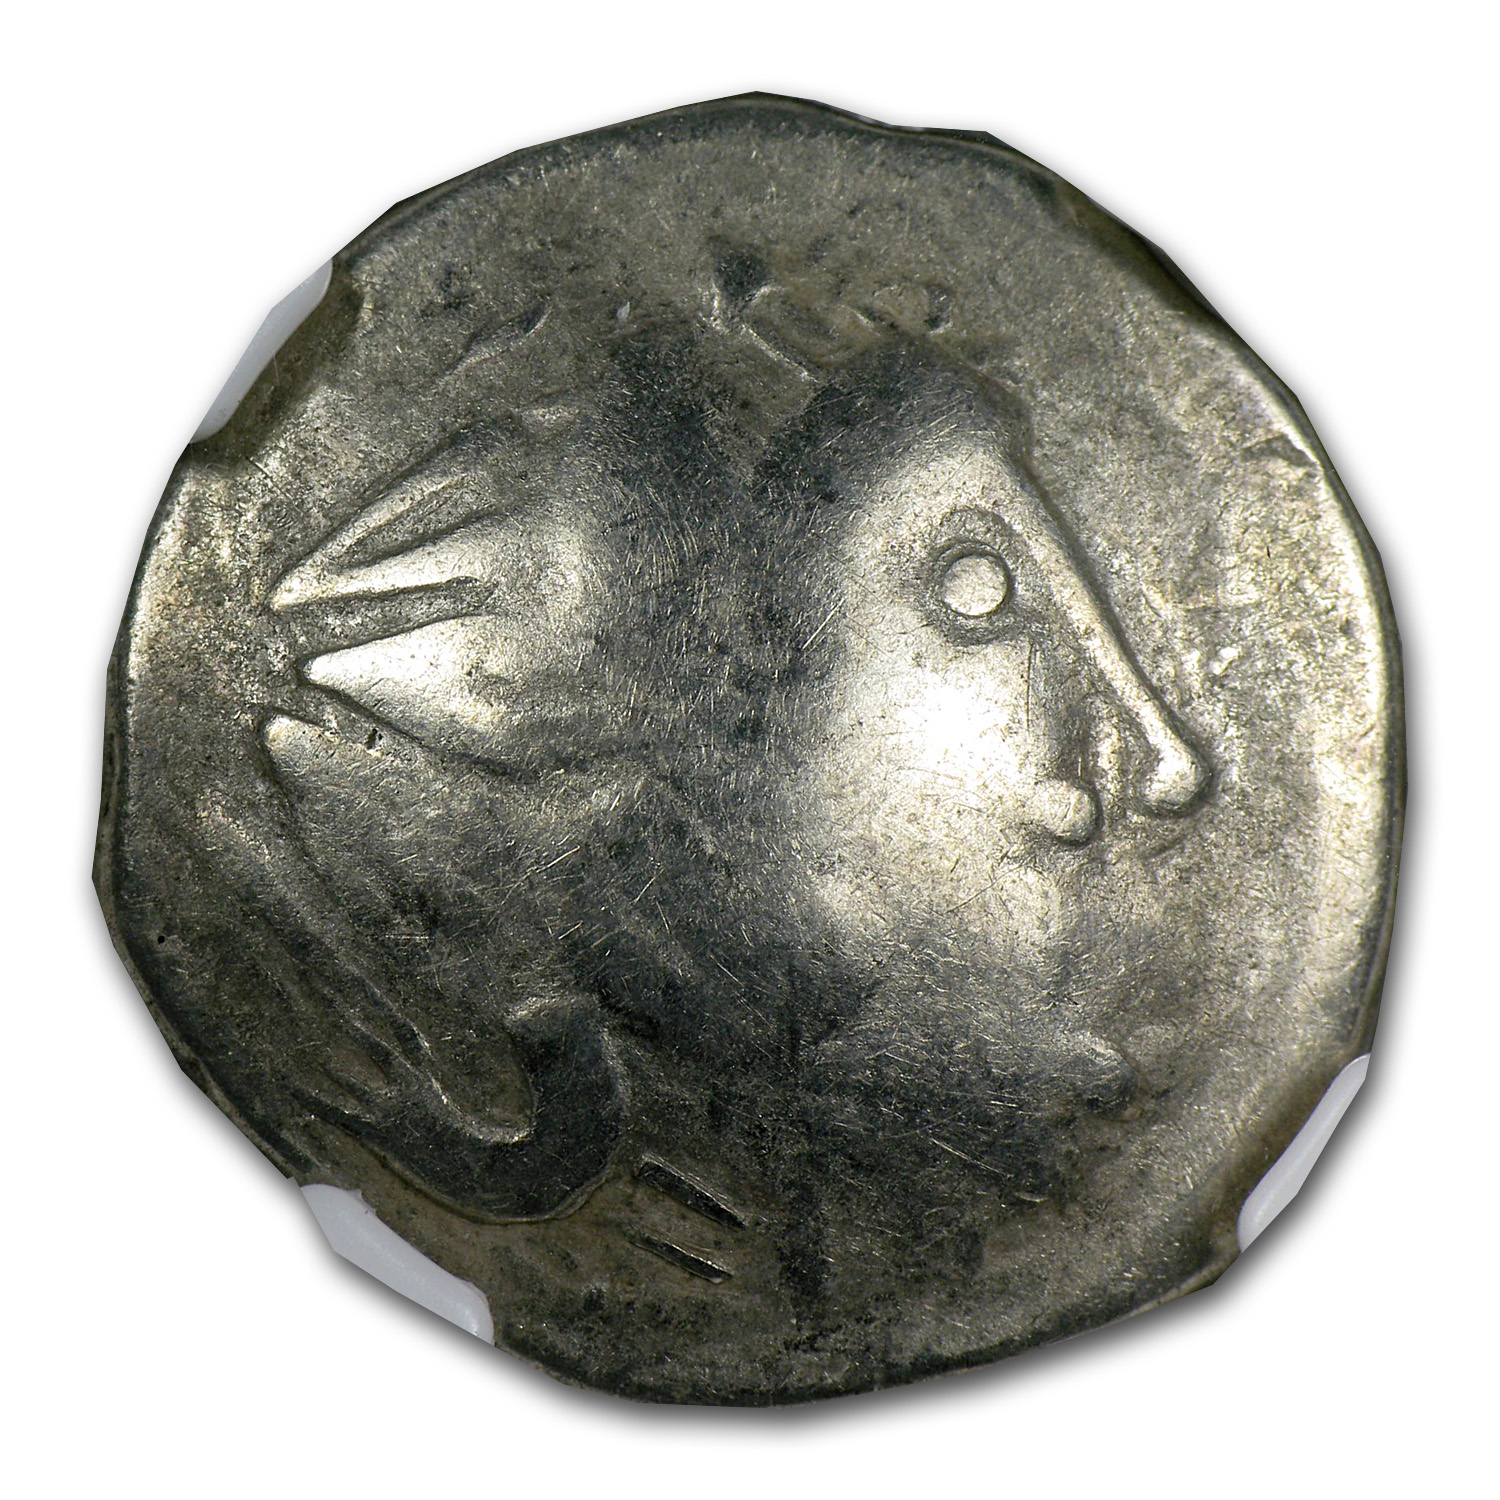 Celts Lower Danube Tetradrachm VG NGC (3rd Century BC)